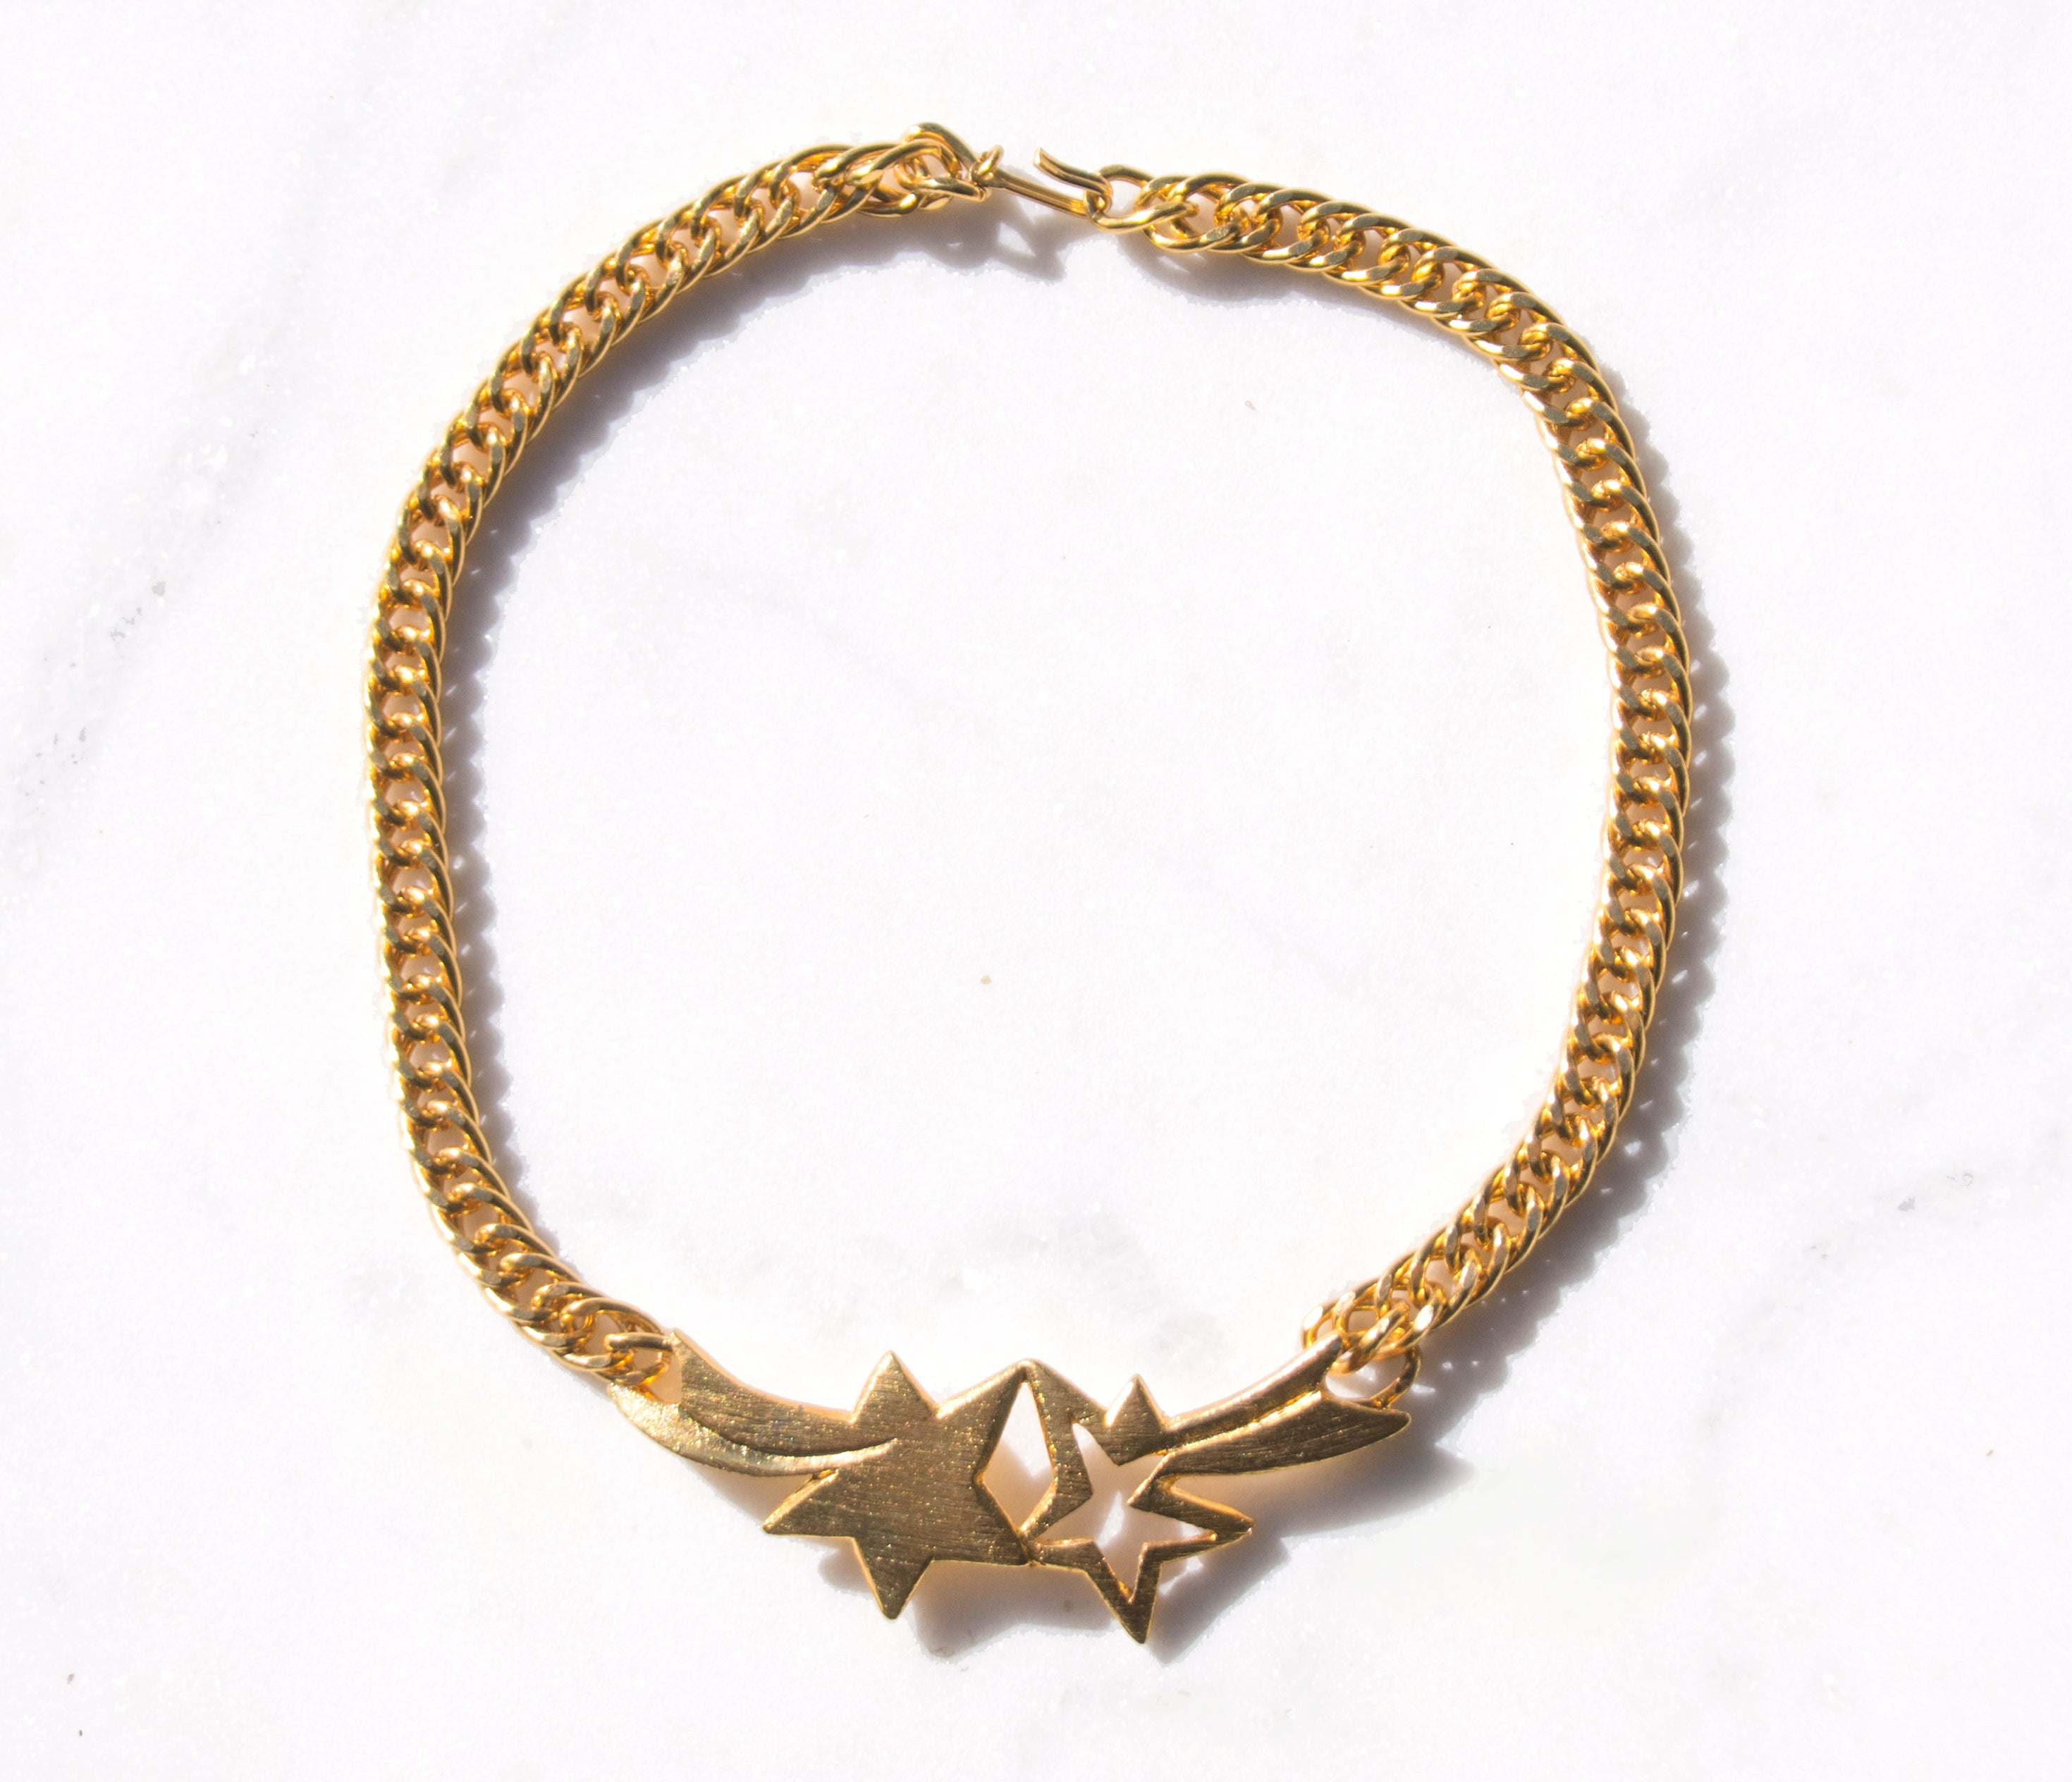 Supernova Gold Collar Necklace